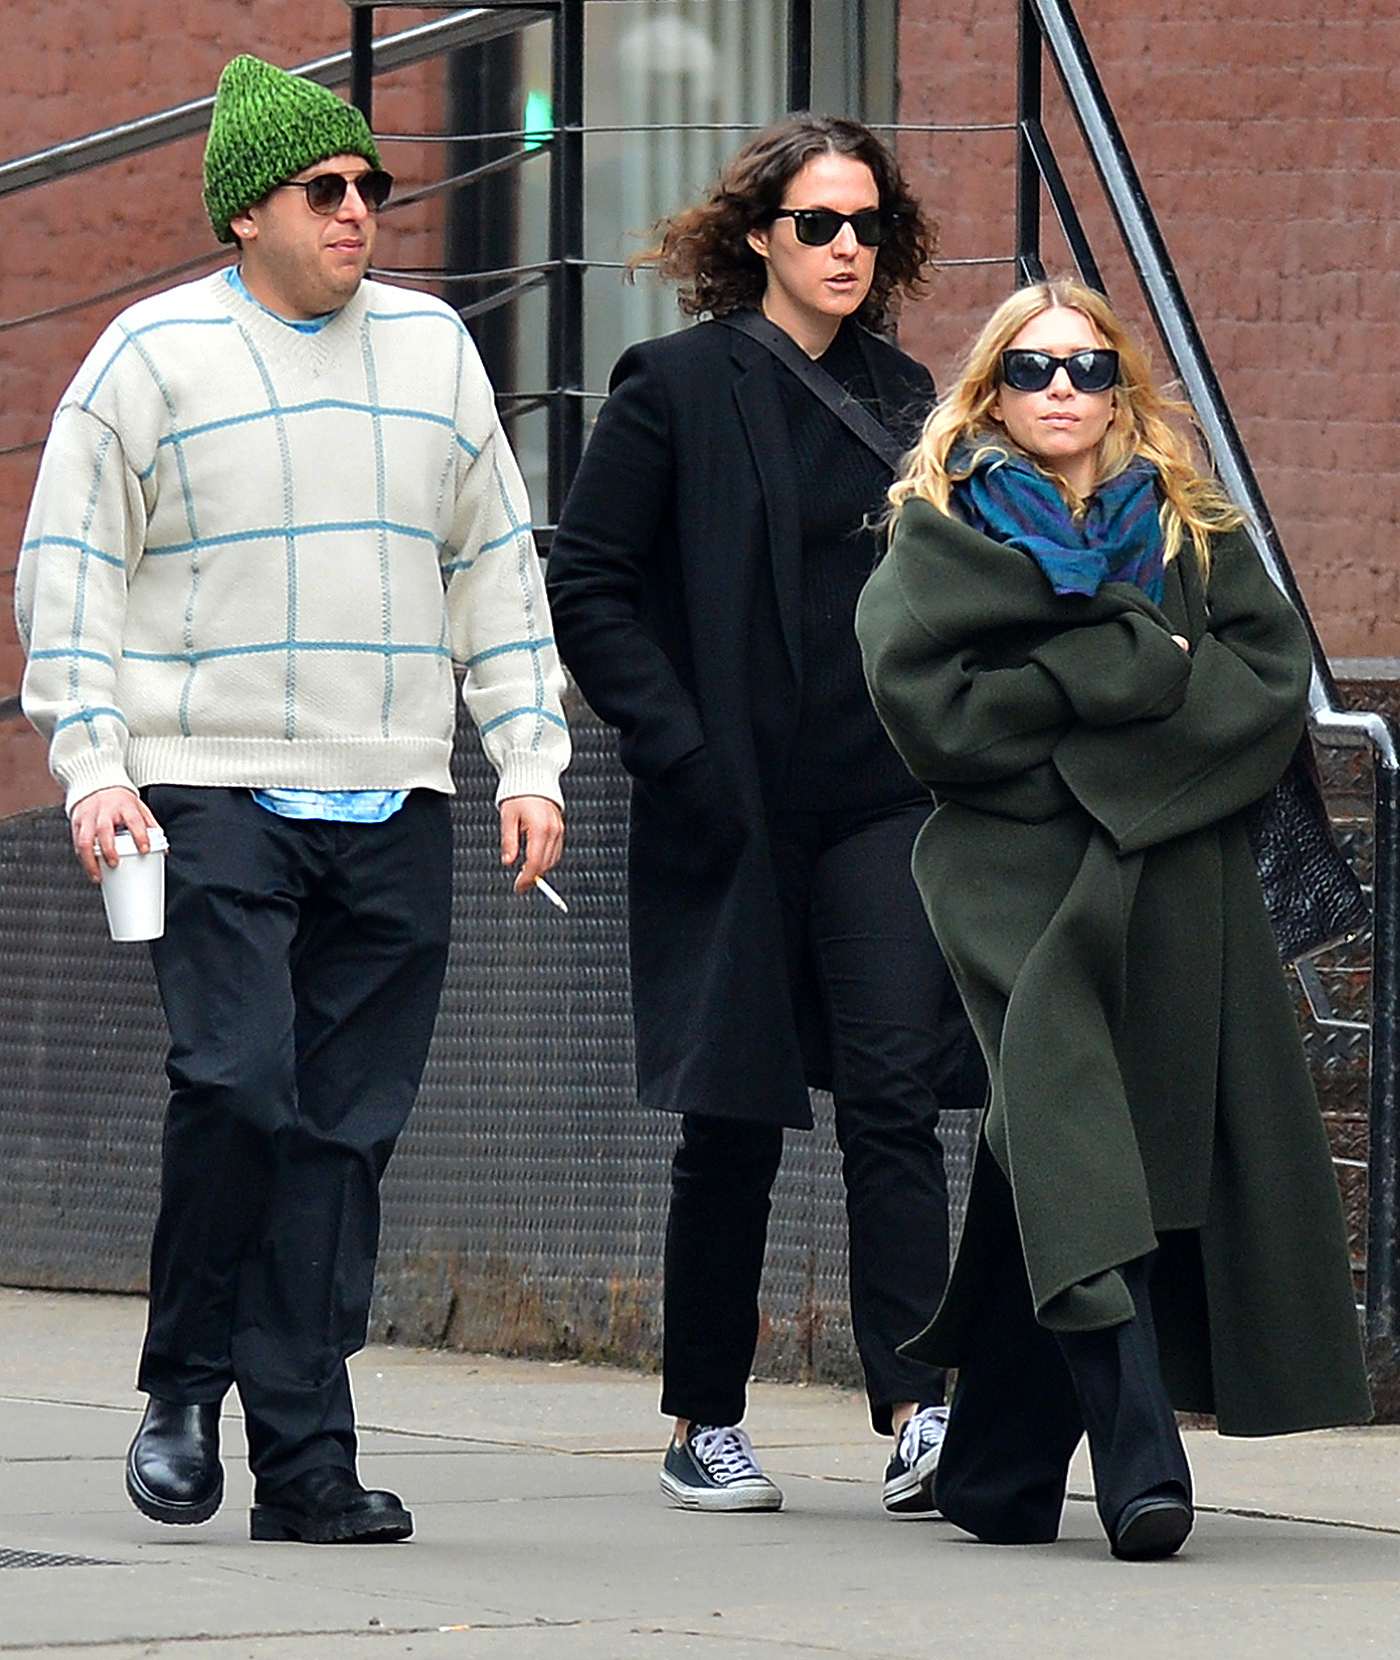 EXCLUSIVE: Jonah Hill and Ashley Olsen are Spotted Out on a Stroll in New York City